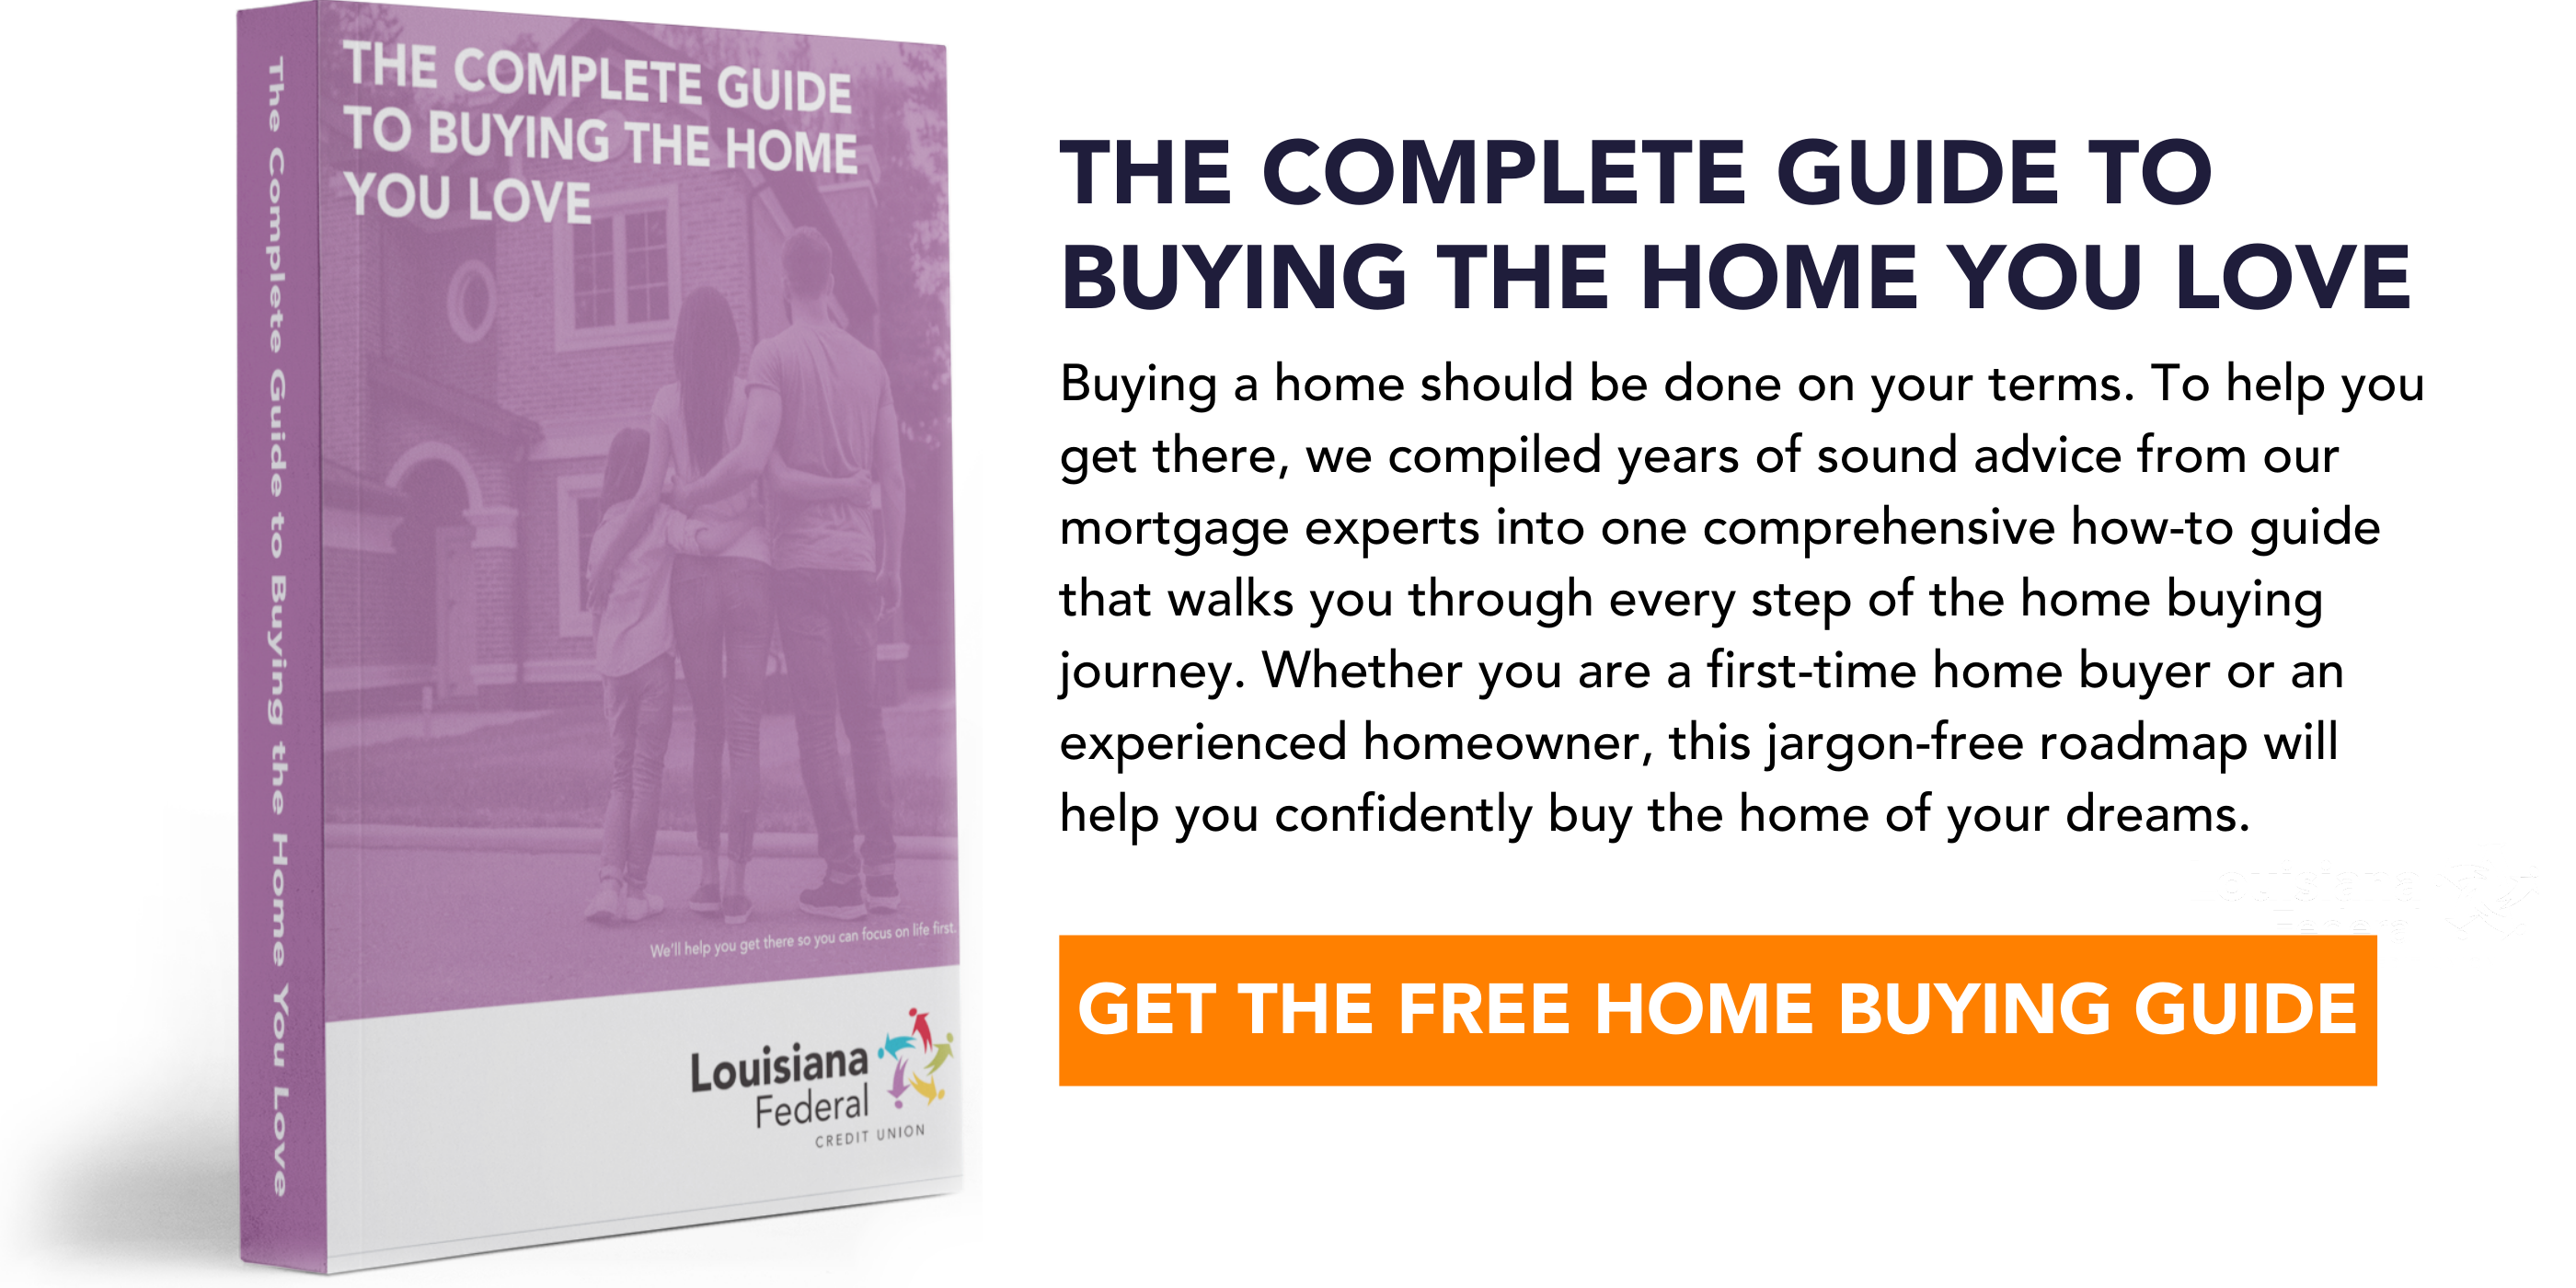 GETTHE FREE HOME BUYING GUIDE.